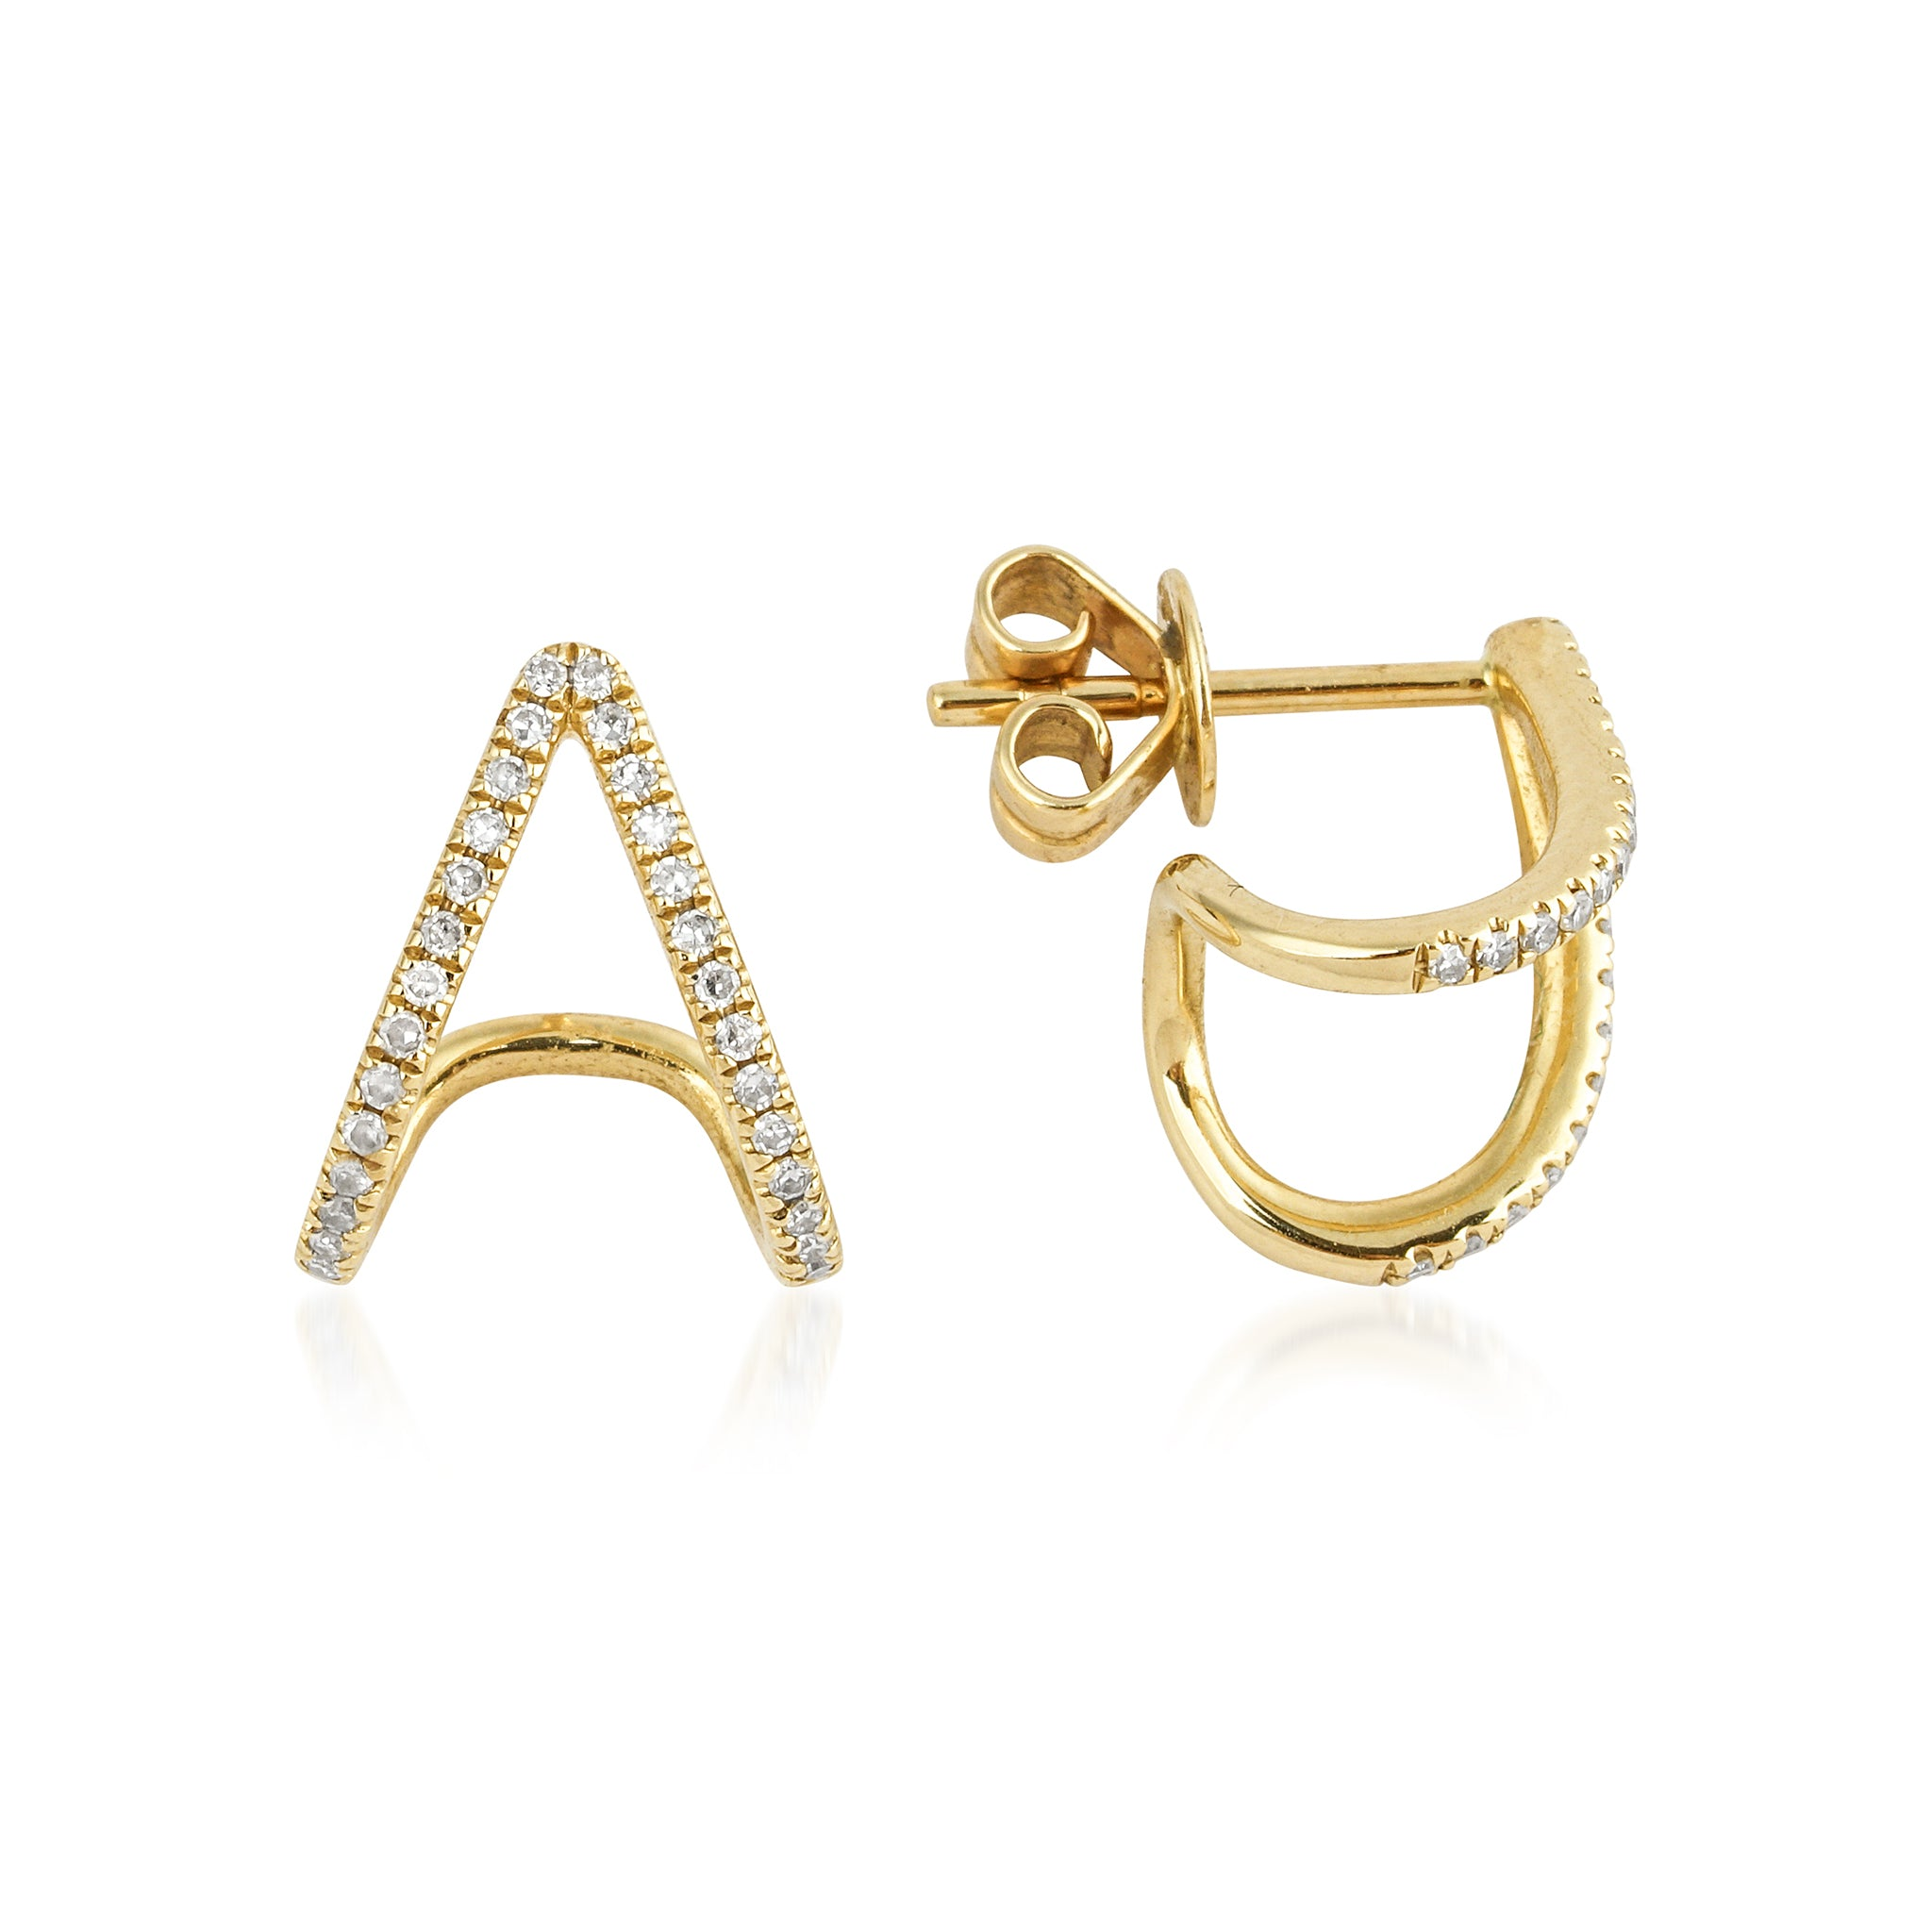 14KT Gold Diamond Huggie Earring - DilaraSaatci